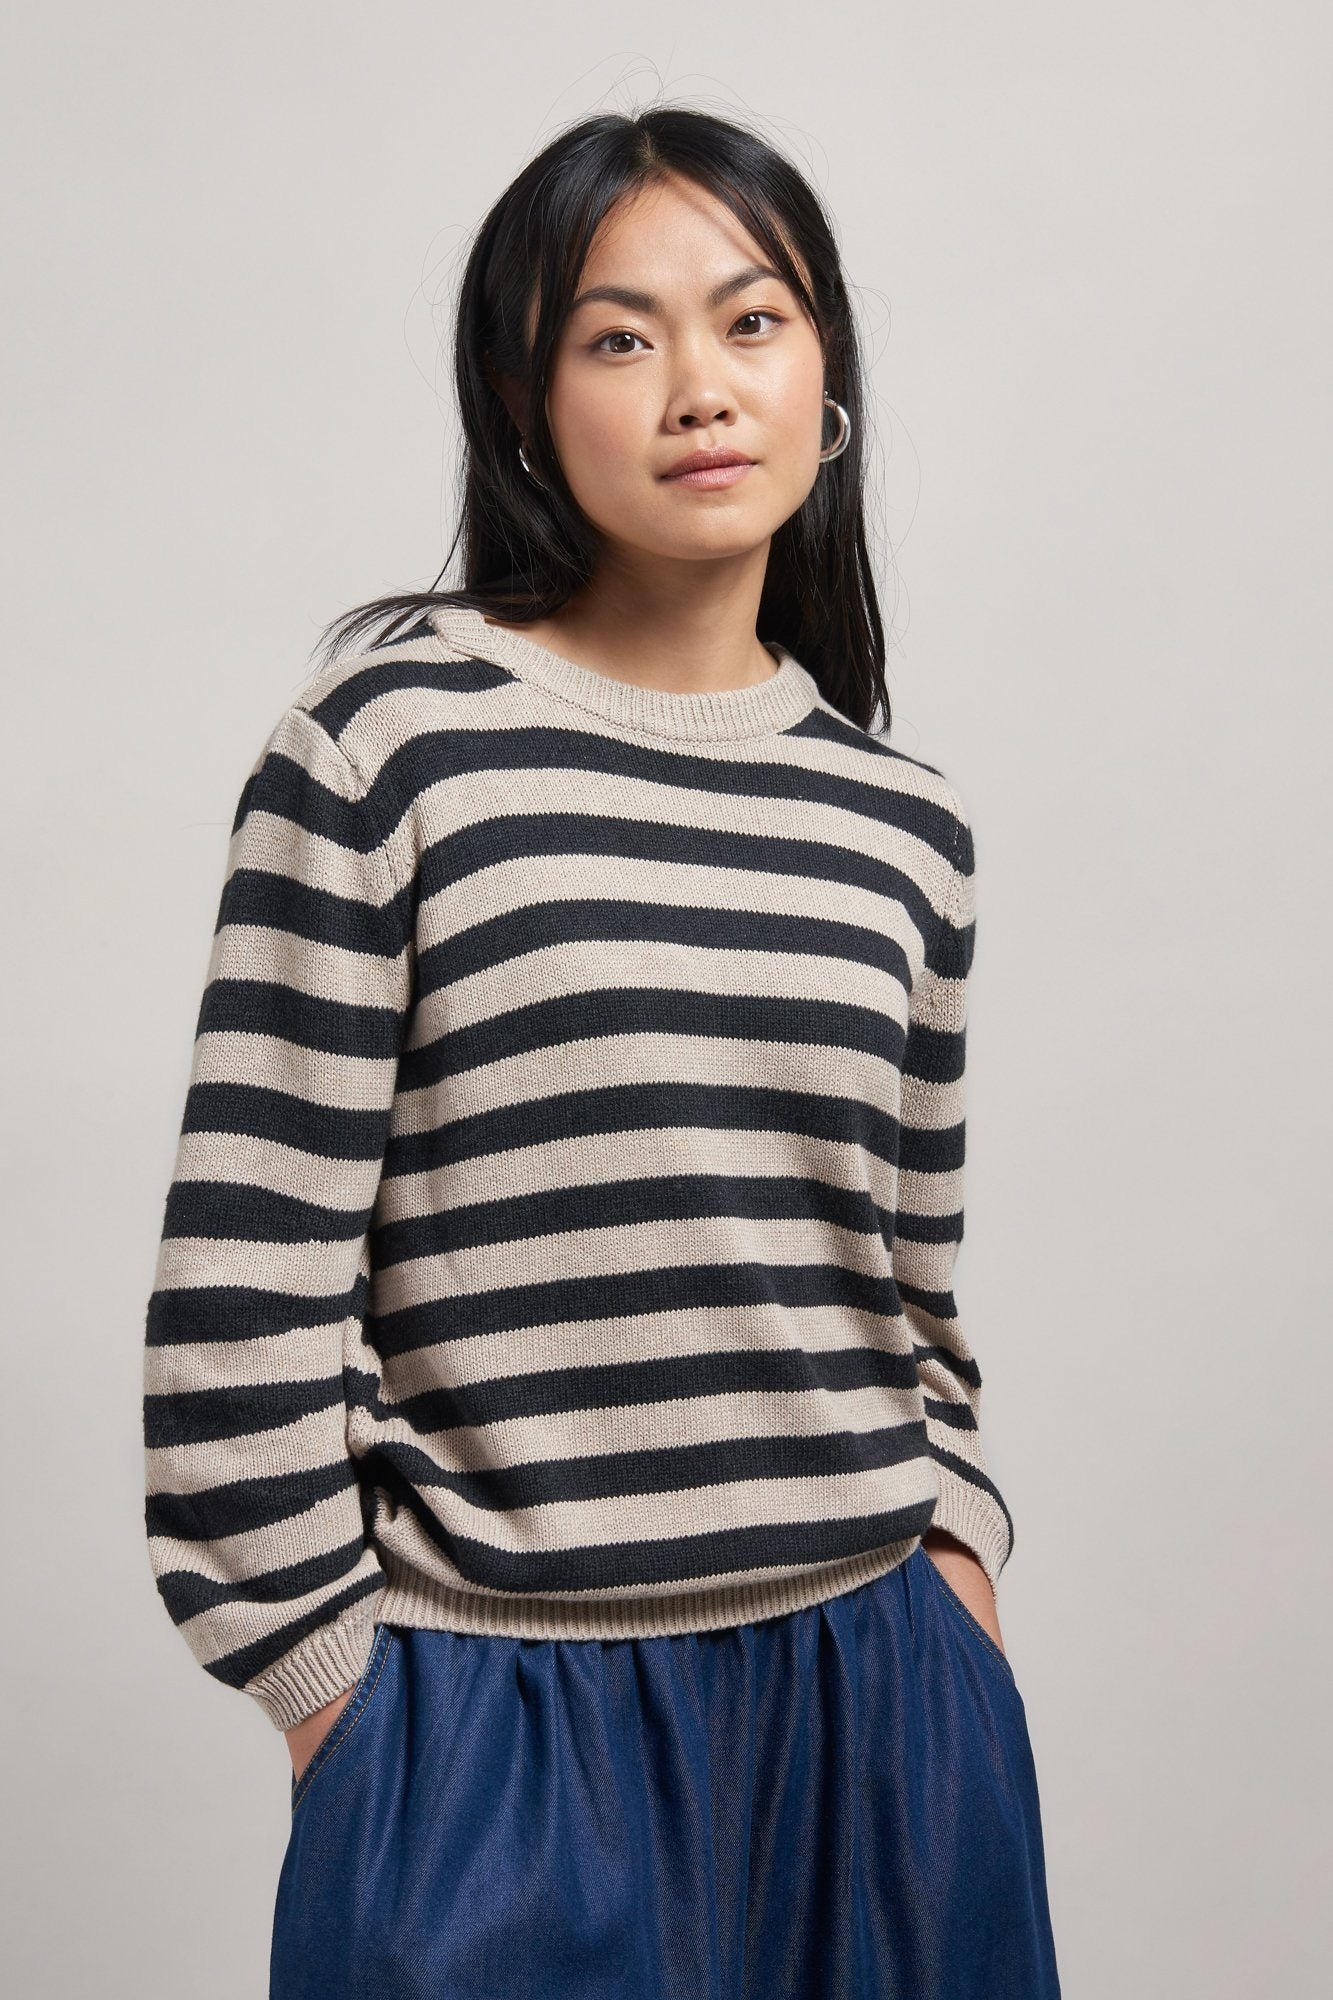 Jumper - KAREN Organic Cotton Jumper